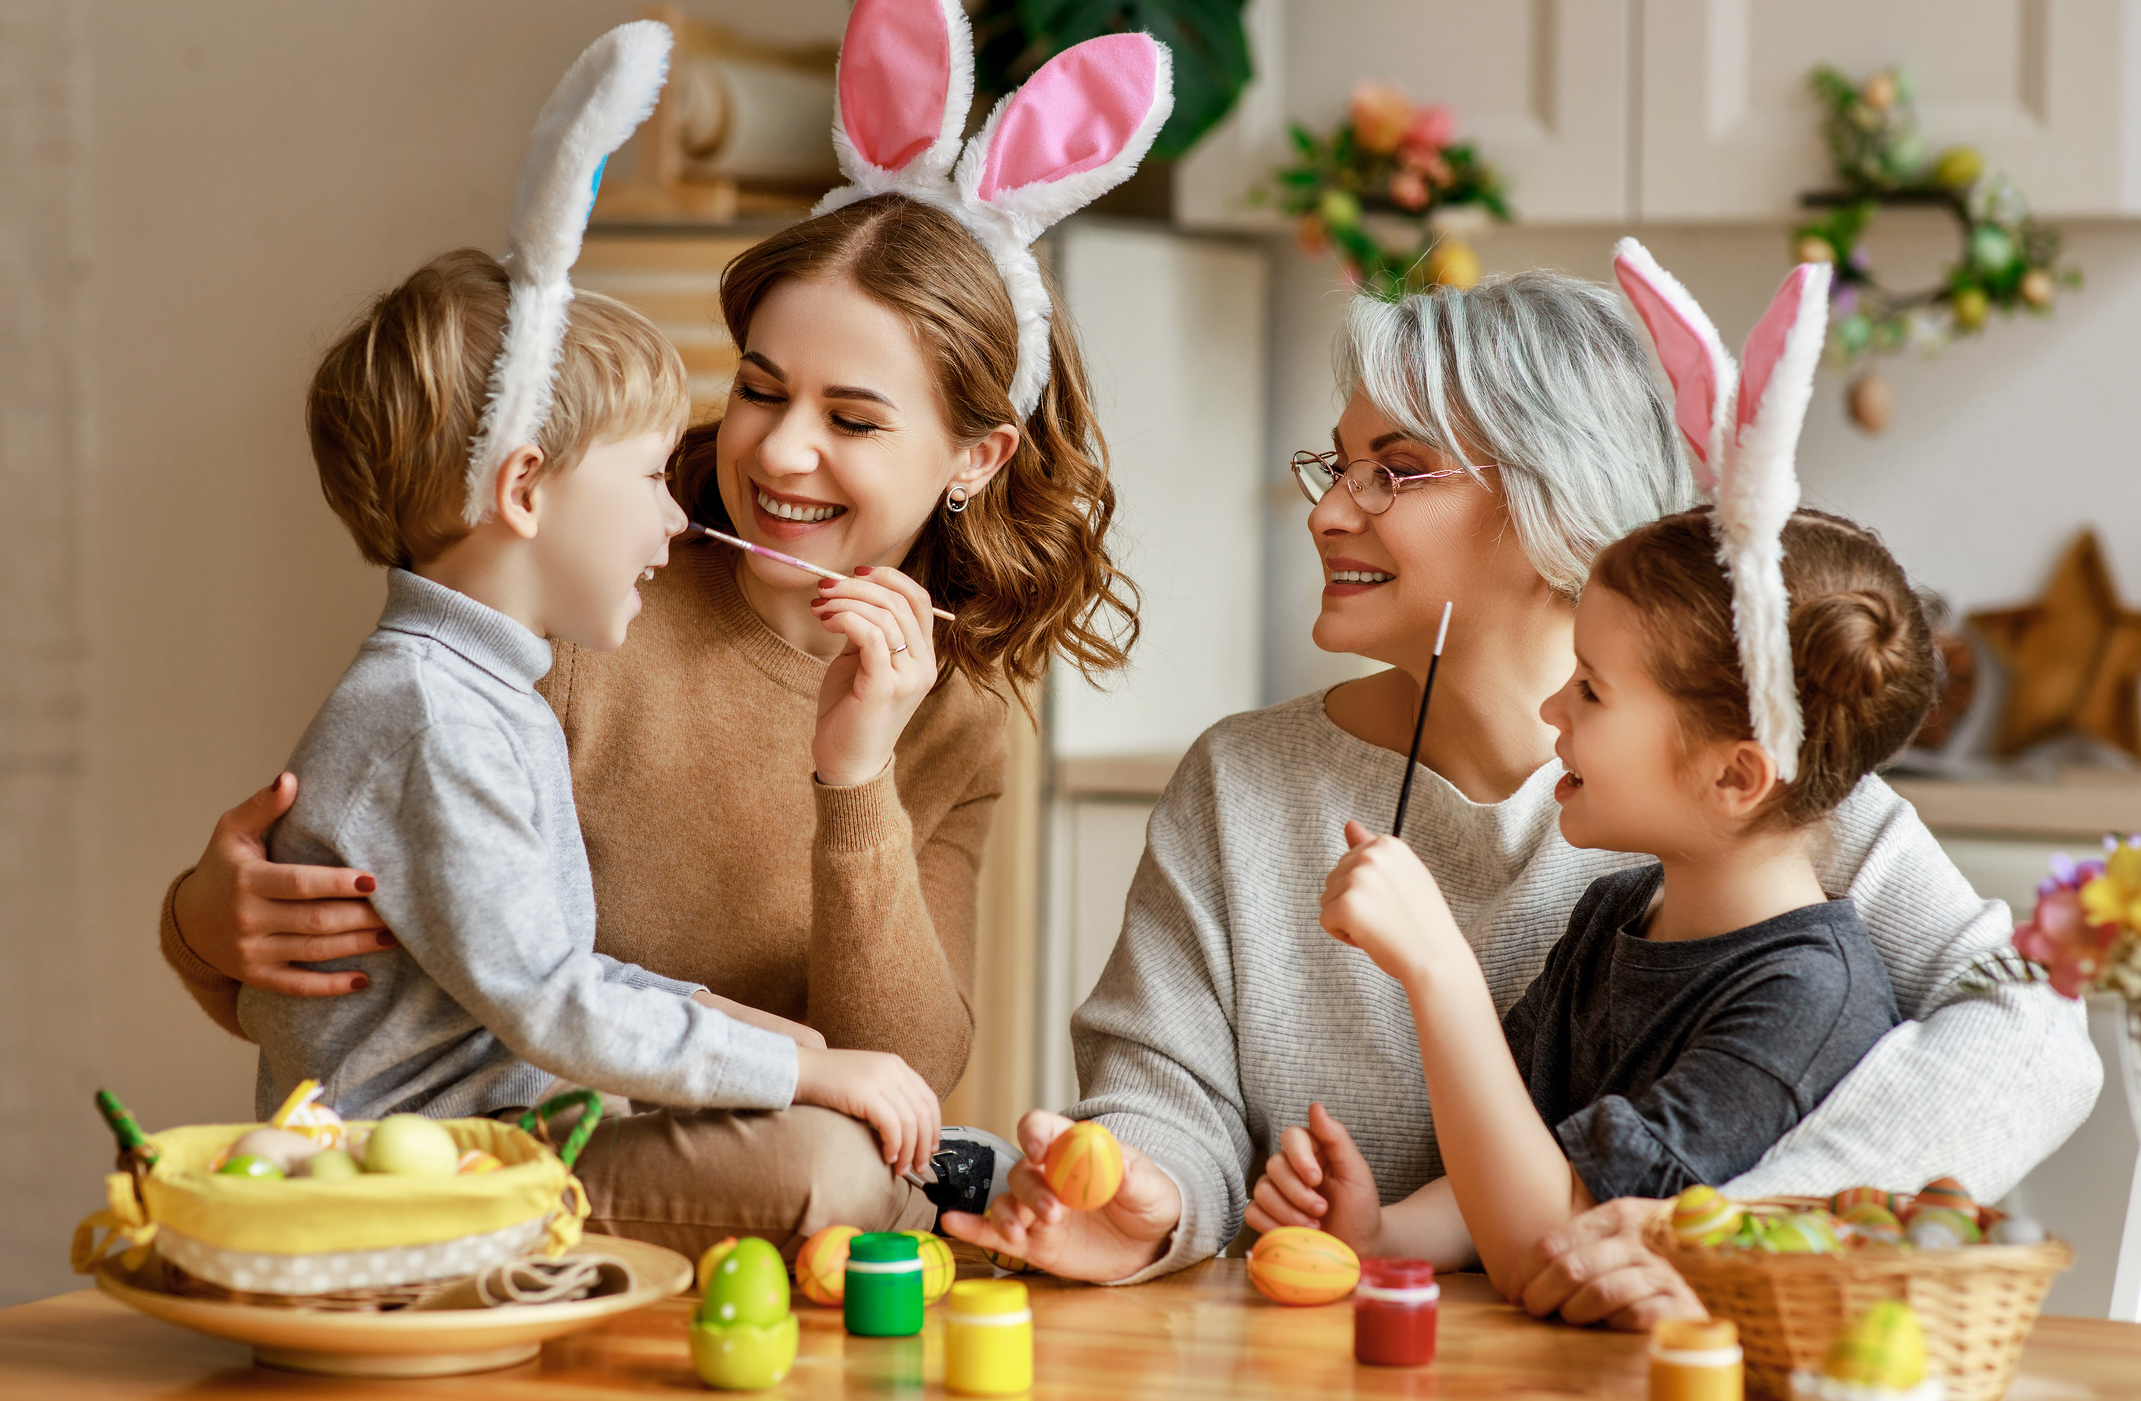 Plan Your Easter 2021 Celebrations in Southlake at Shops of Southlake